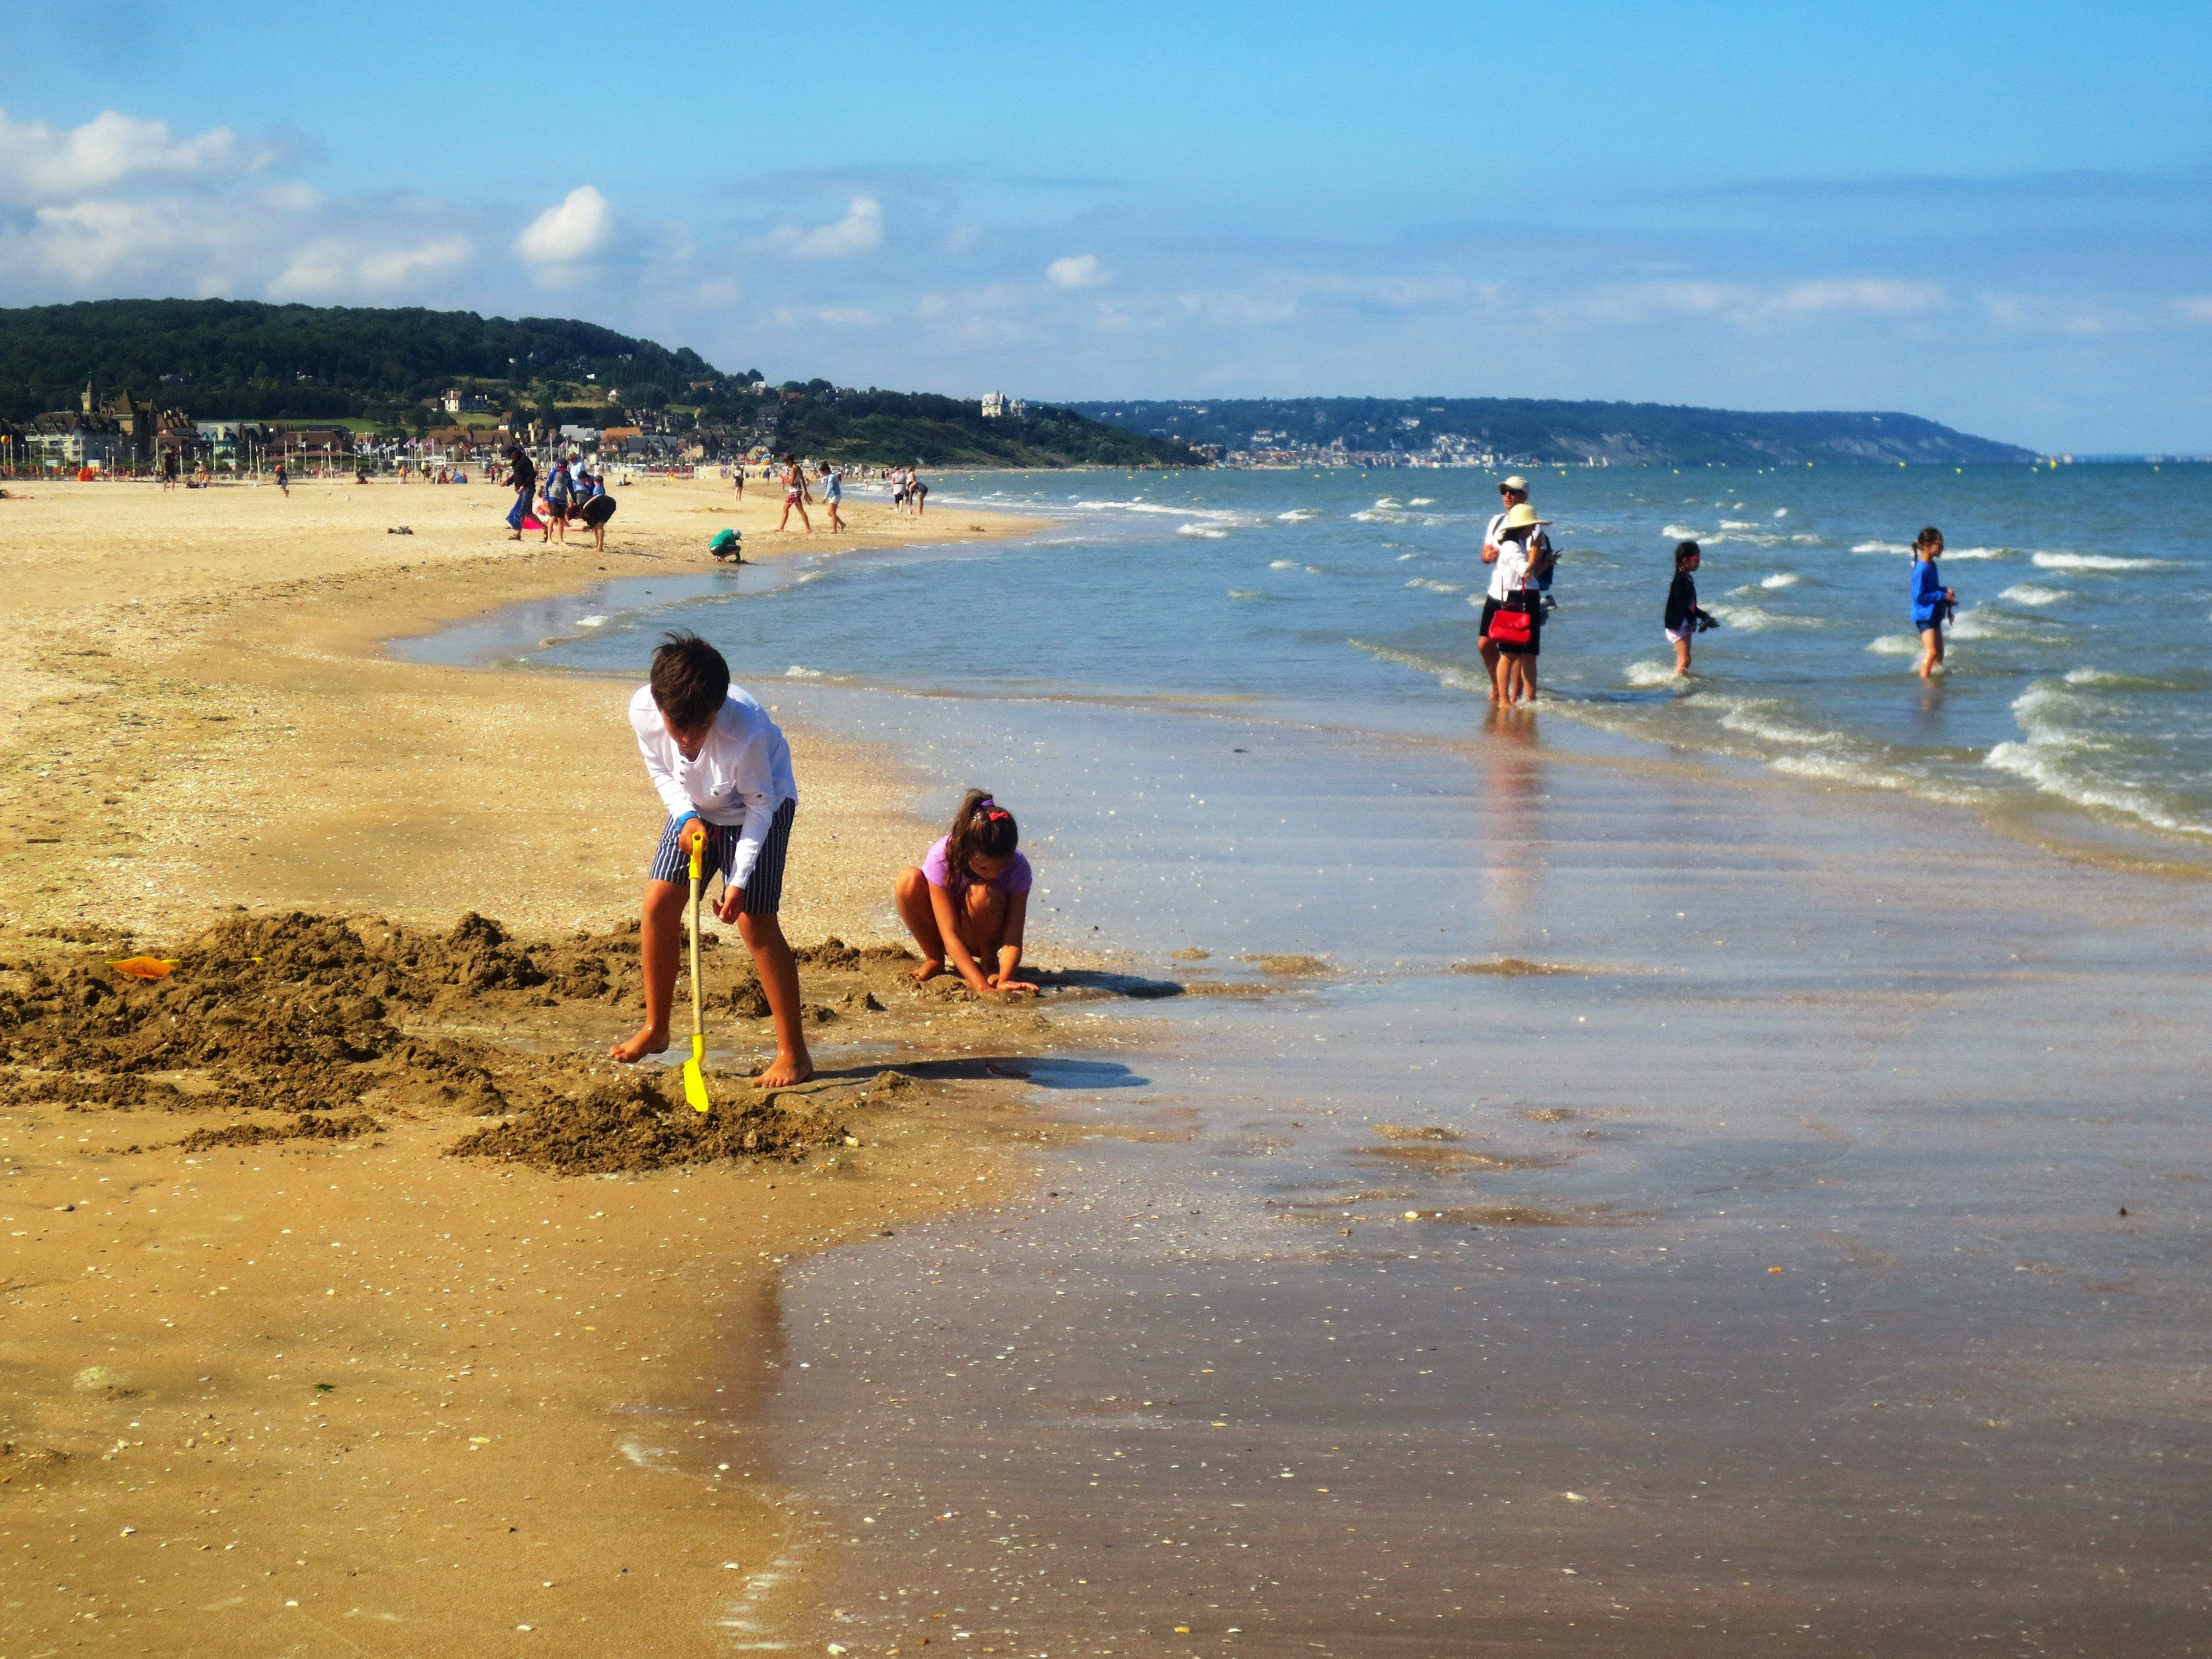 Children play on the beach in the resort town of Deauville, France, on the English Channel.